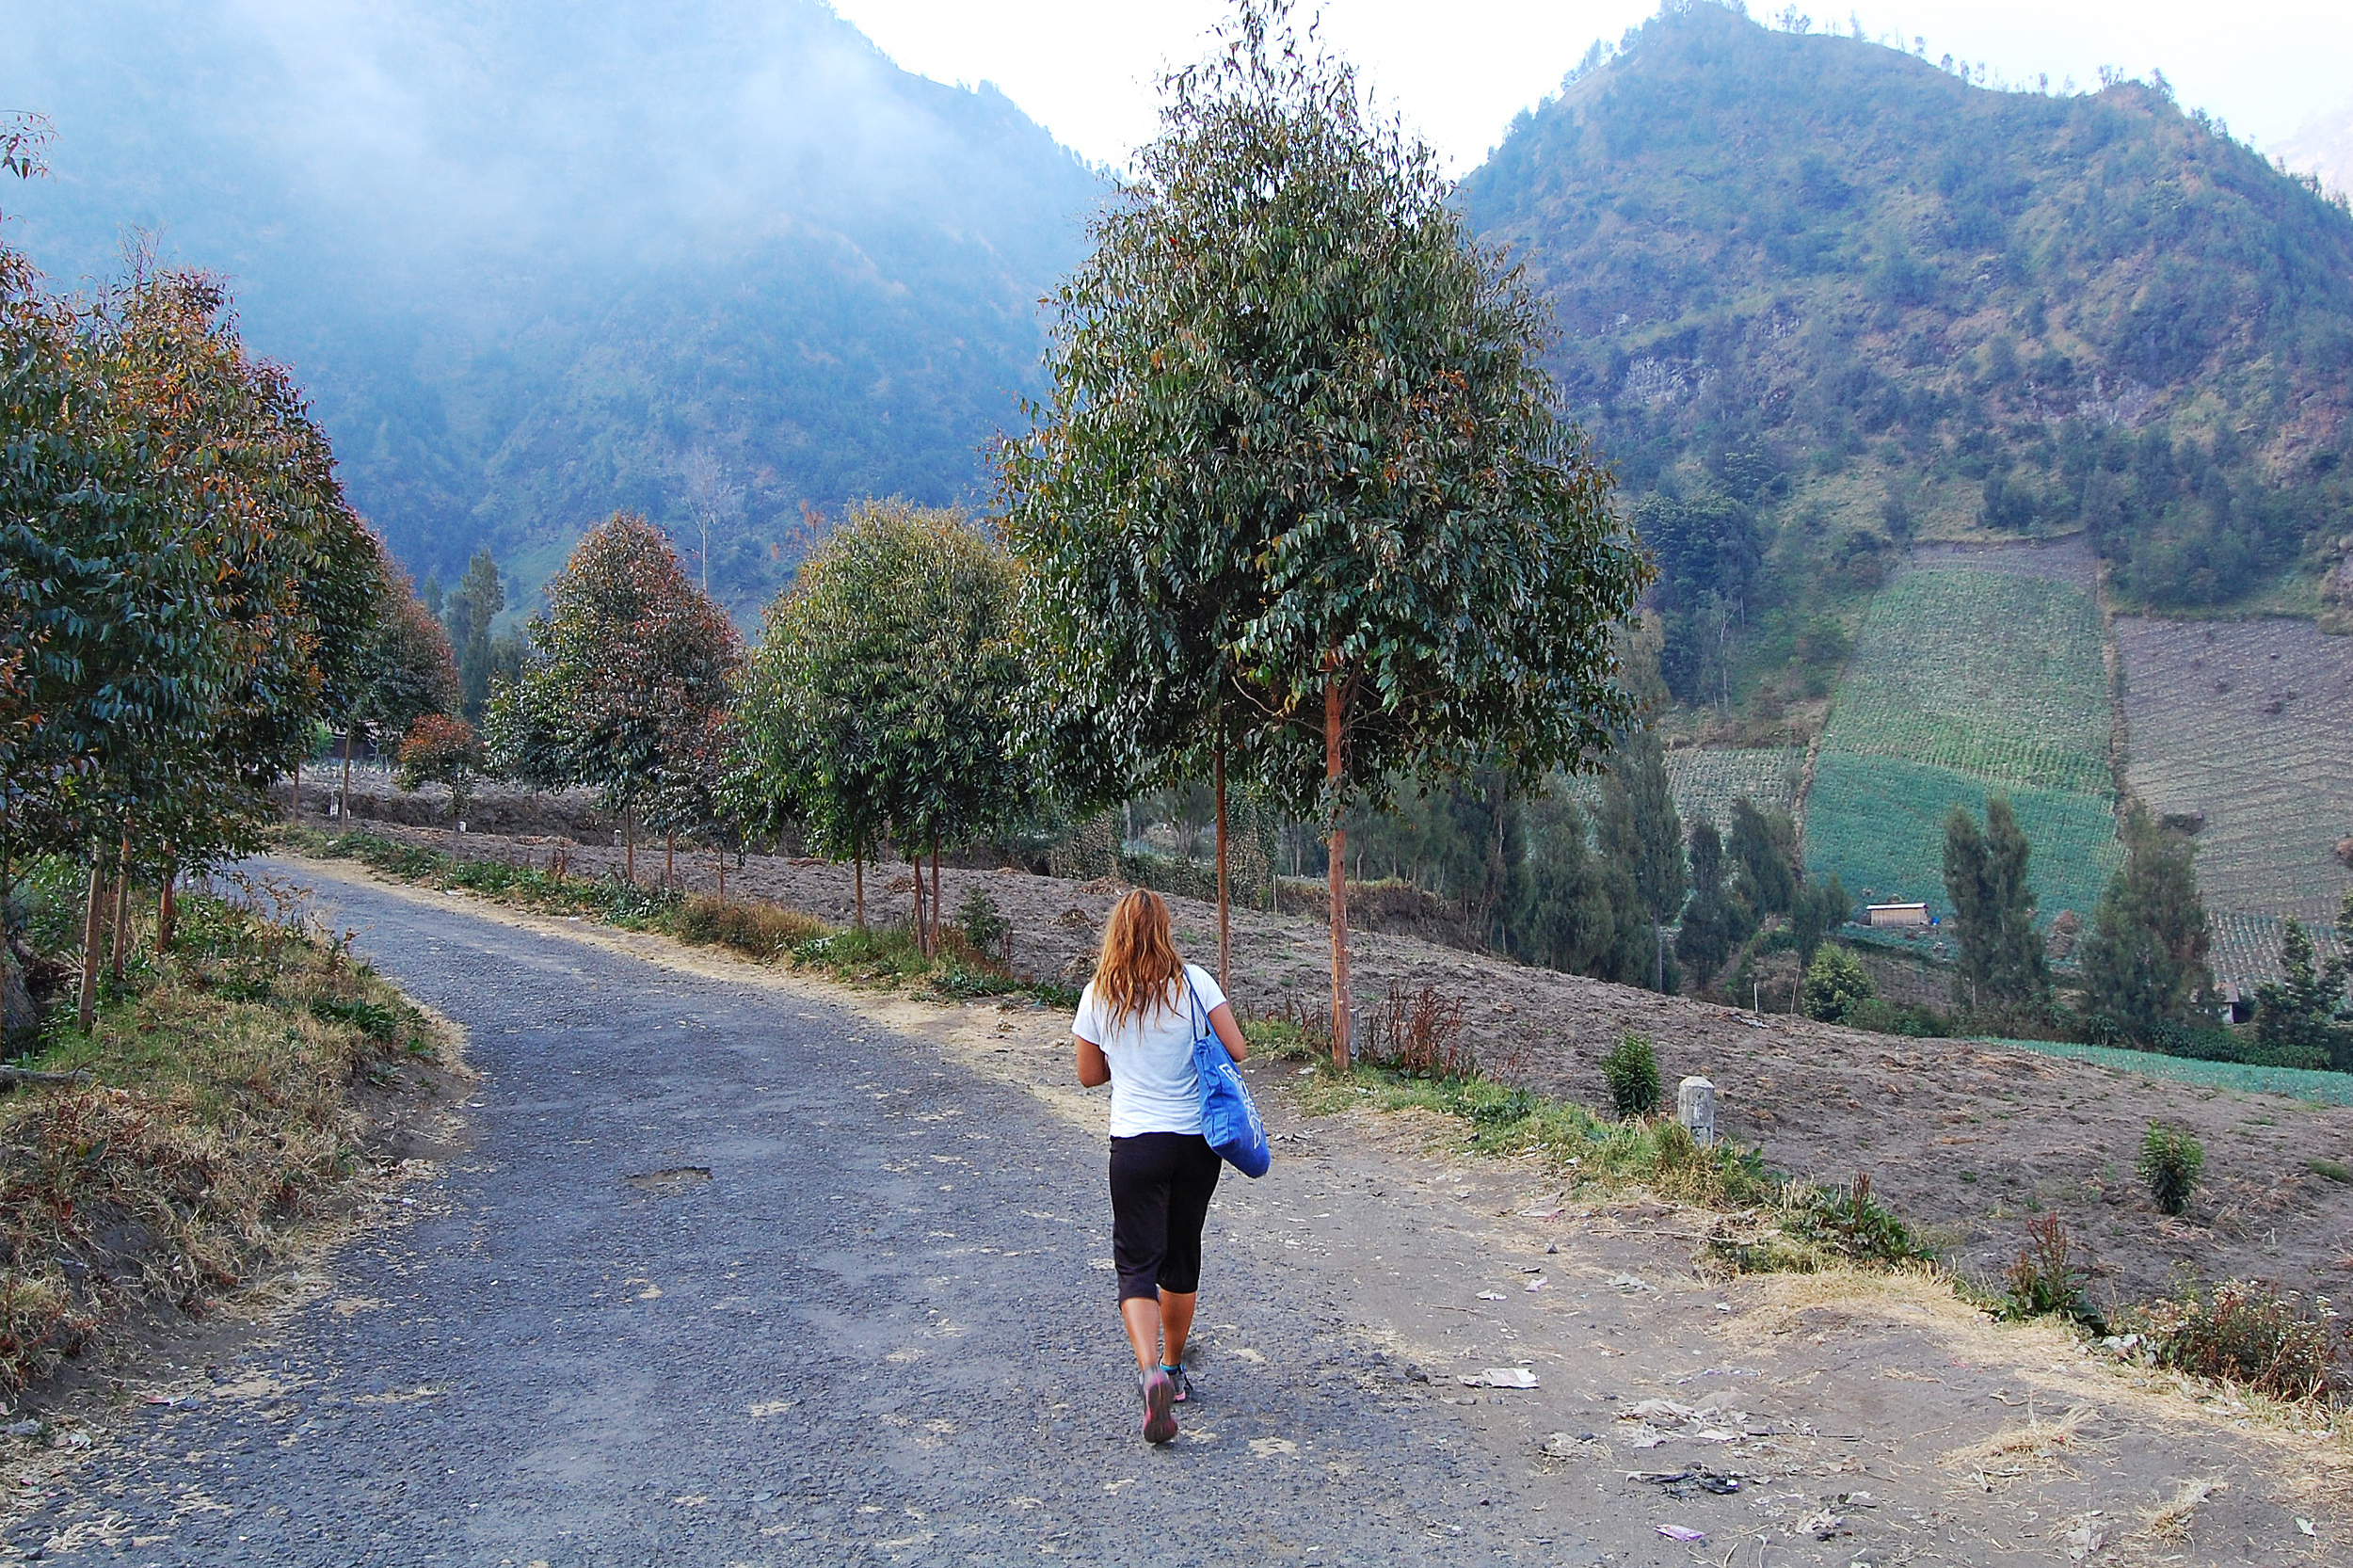 A woman walking down a road on the mountain